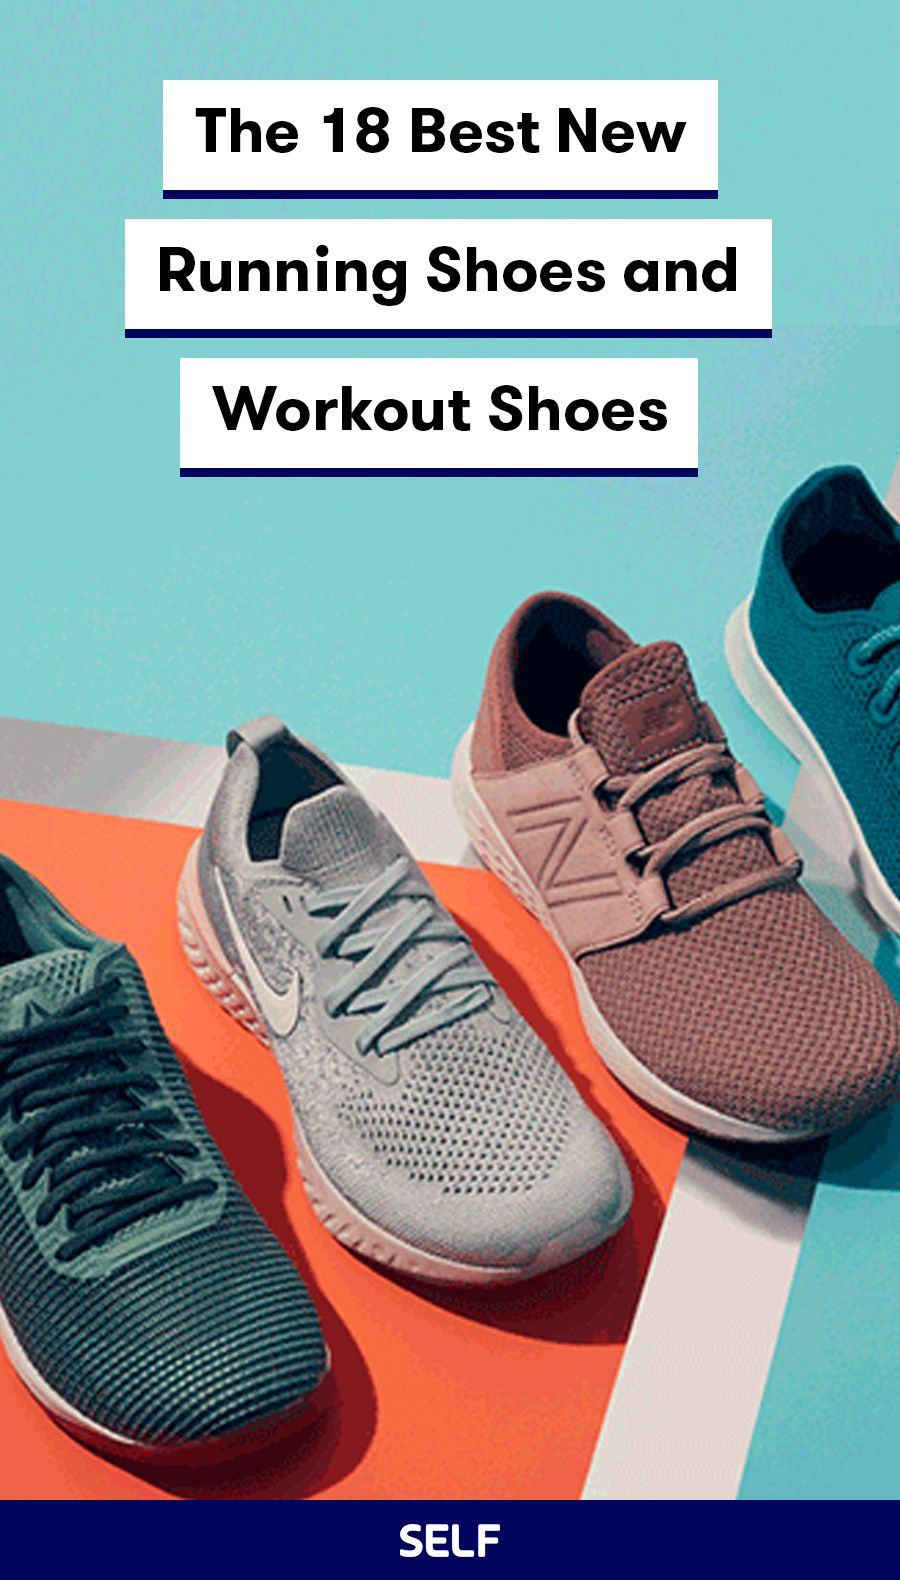 The 18 Best New Running Shoes and Workout Shoes | Fitness